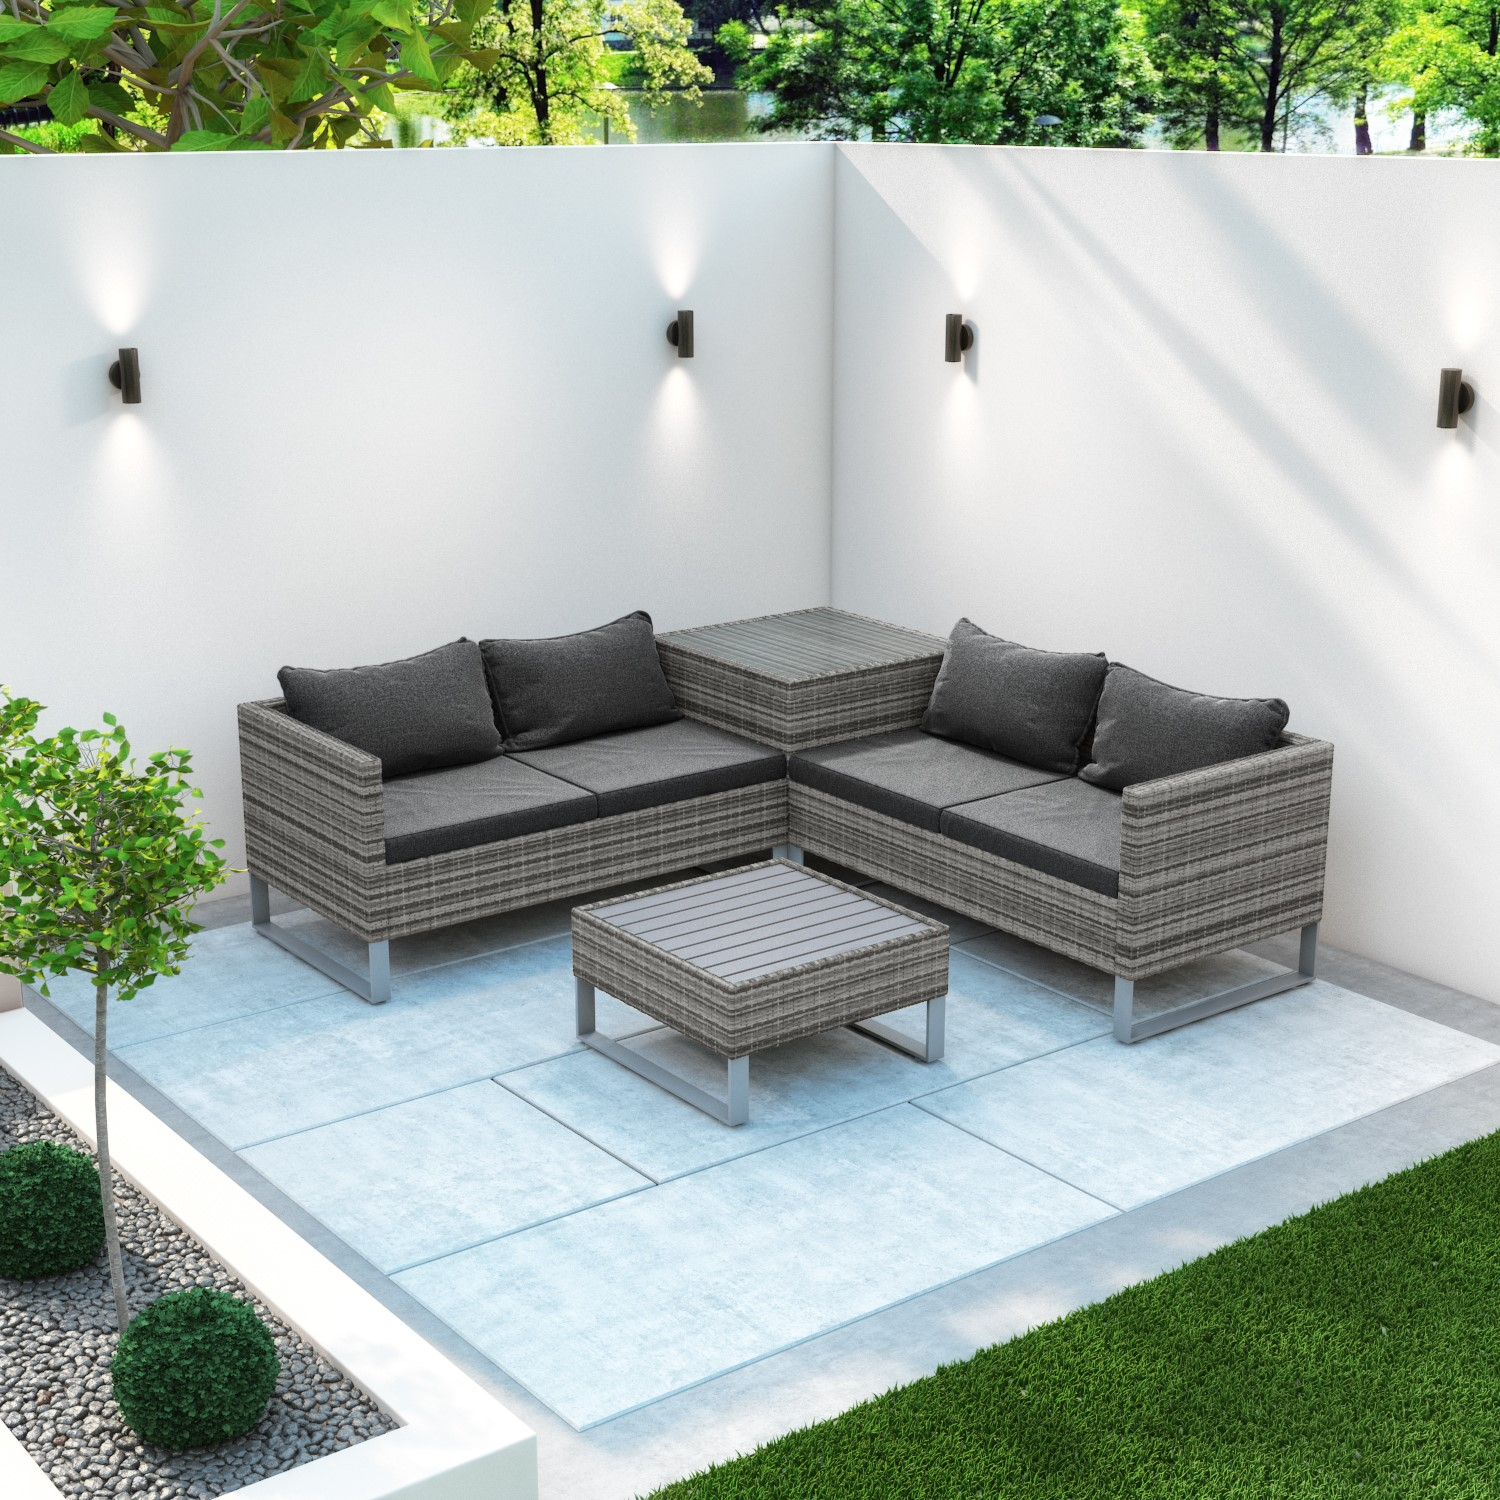 Rattan Corner Sofa Set with Storage Box and Table in Grey